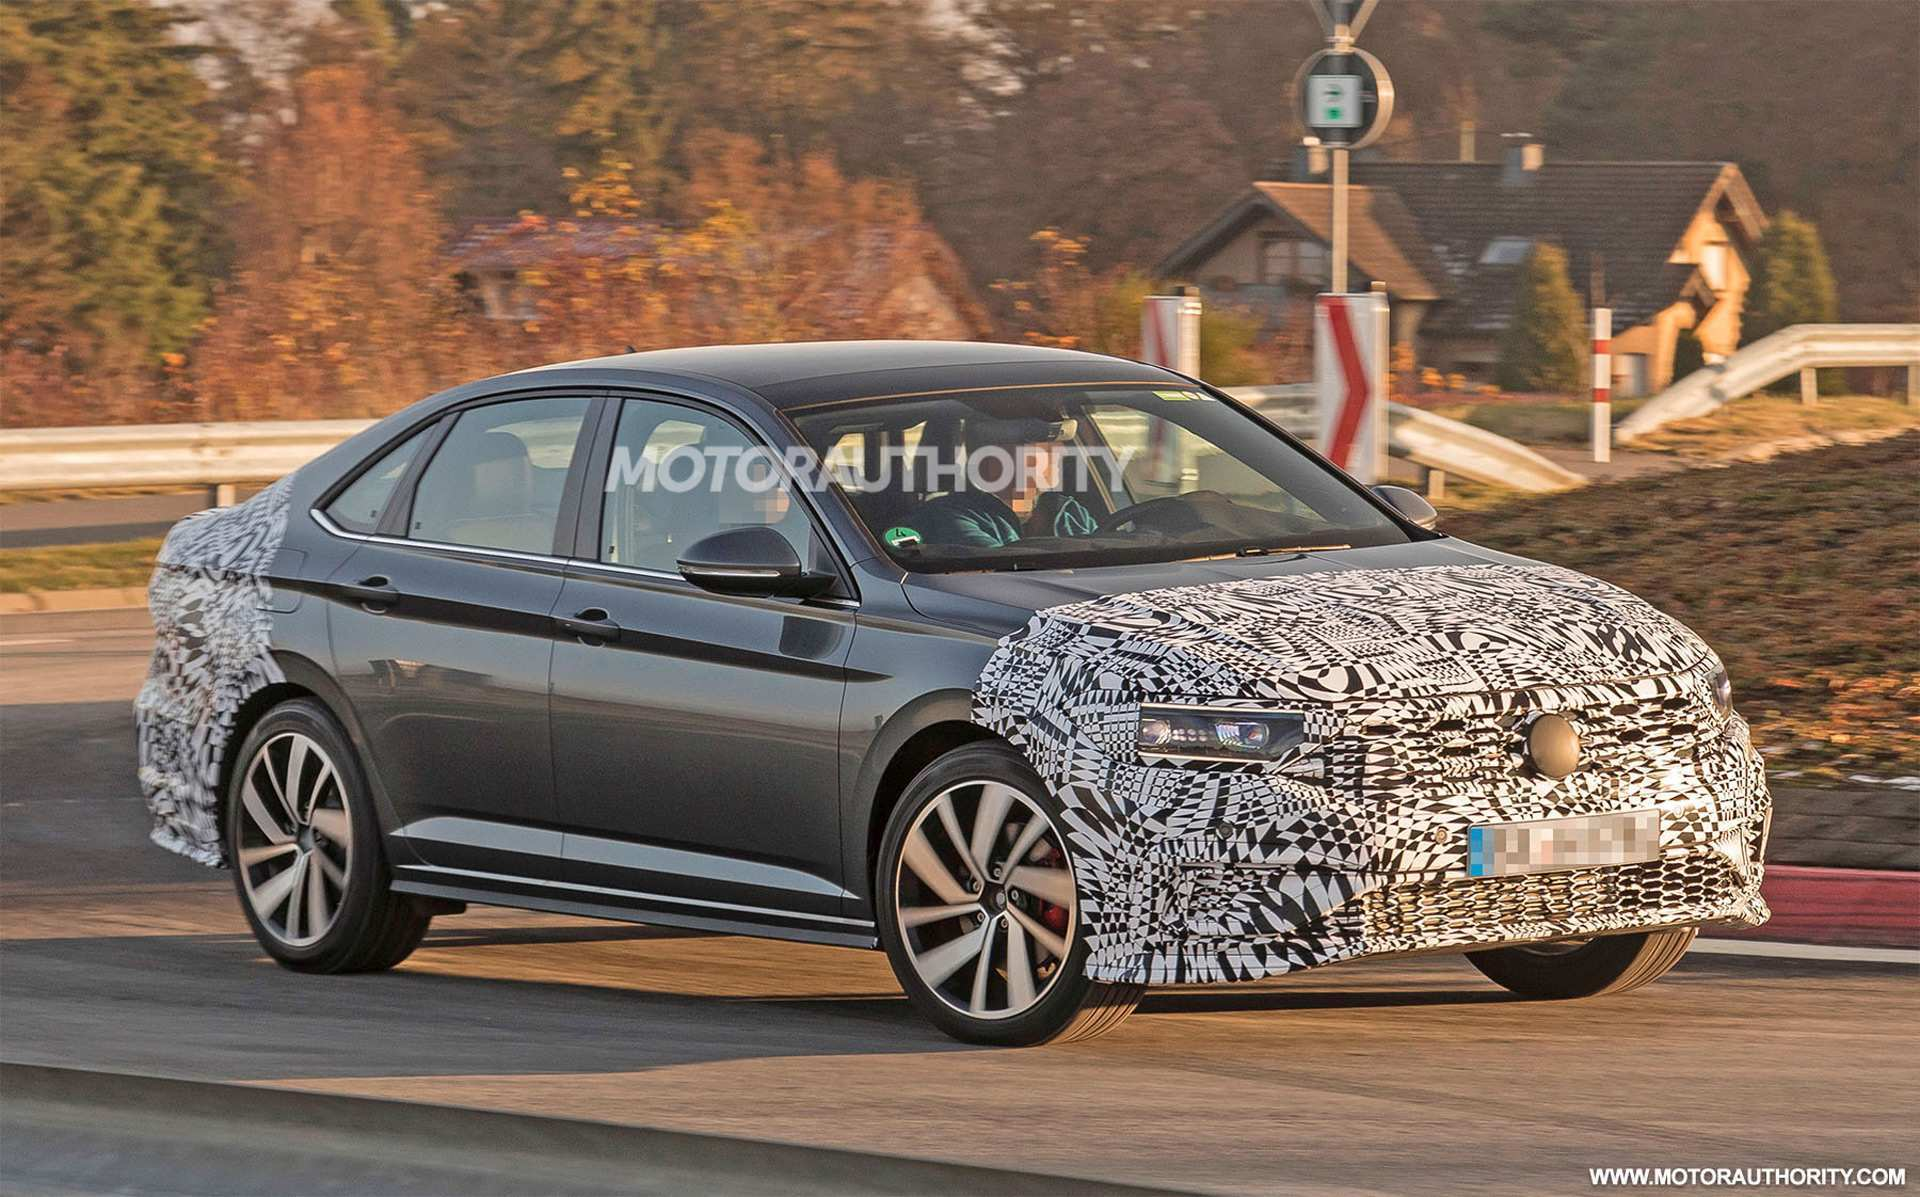 96 Concept of 2019 Jetta Spy Shots Price for 2019 Jetta Spy Shots